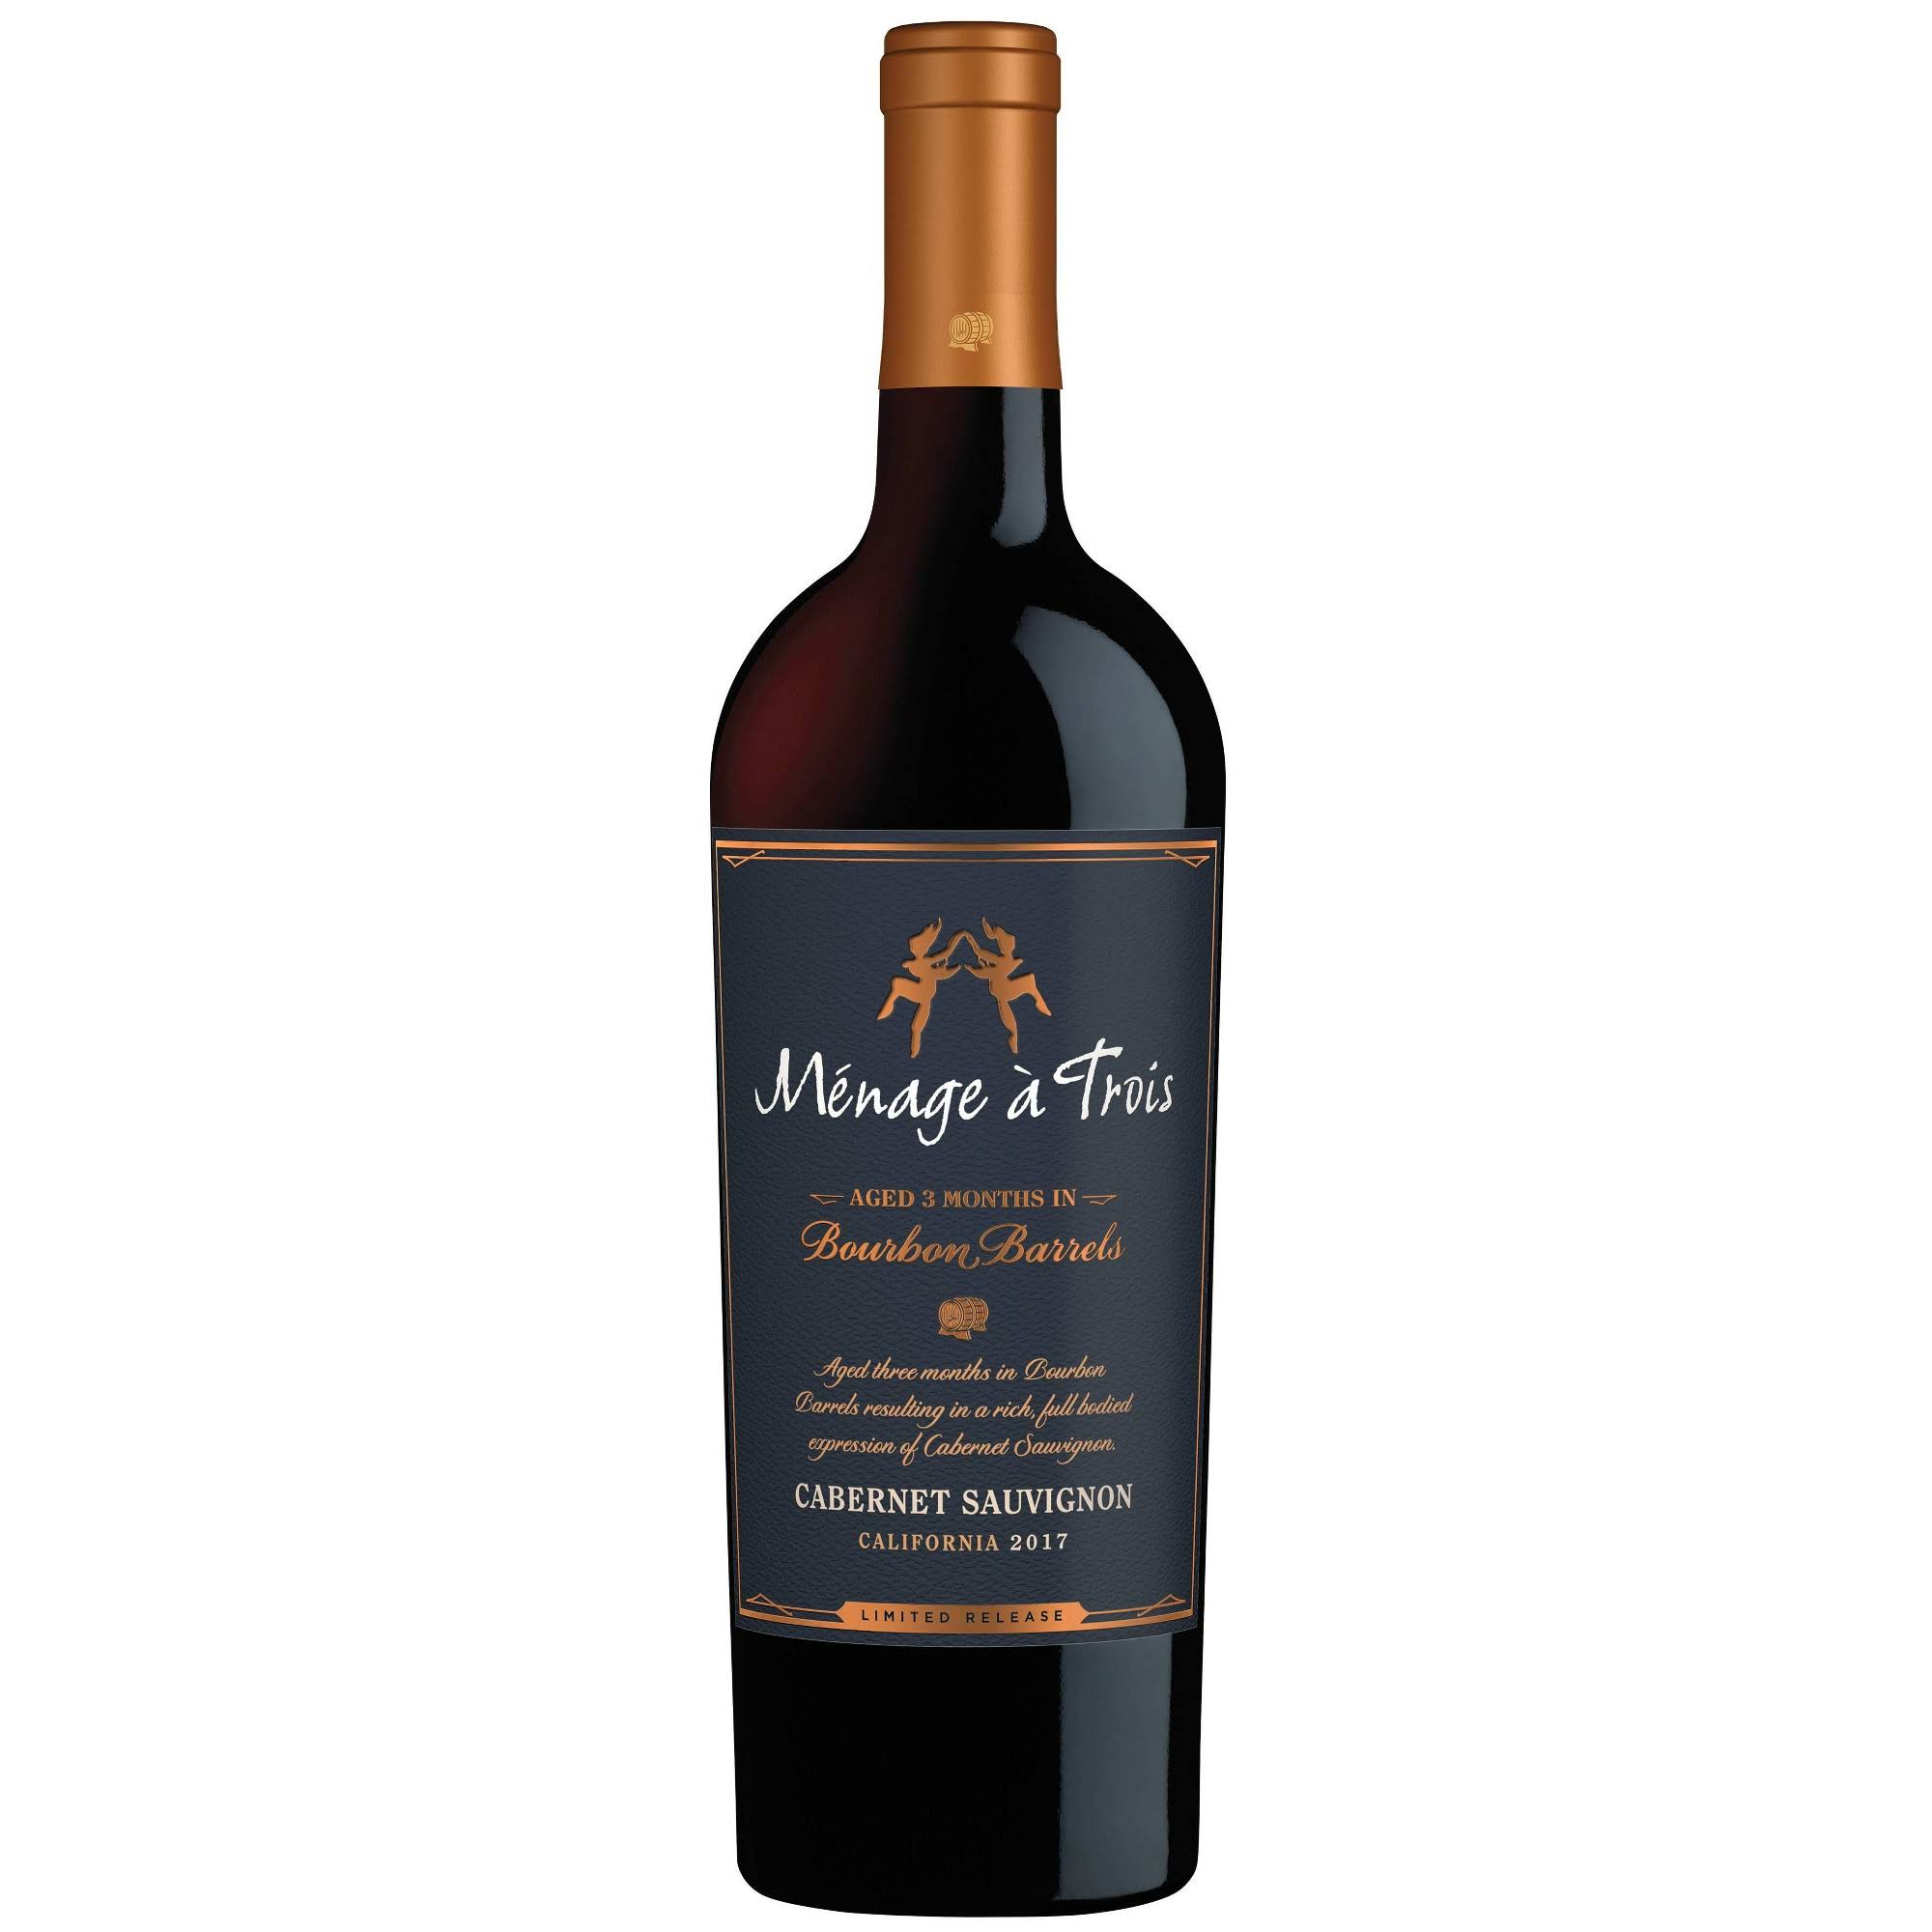 Menage A Trois Cabernet Sauvignon, Bourbon Barrels, California, 2016 - 750 ml